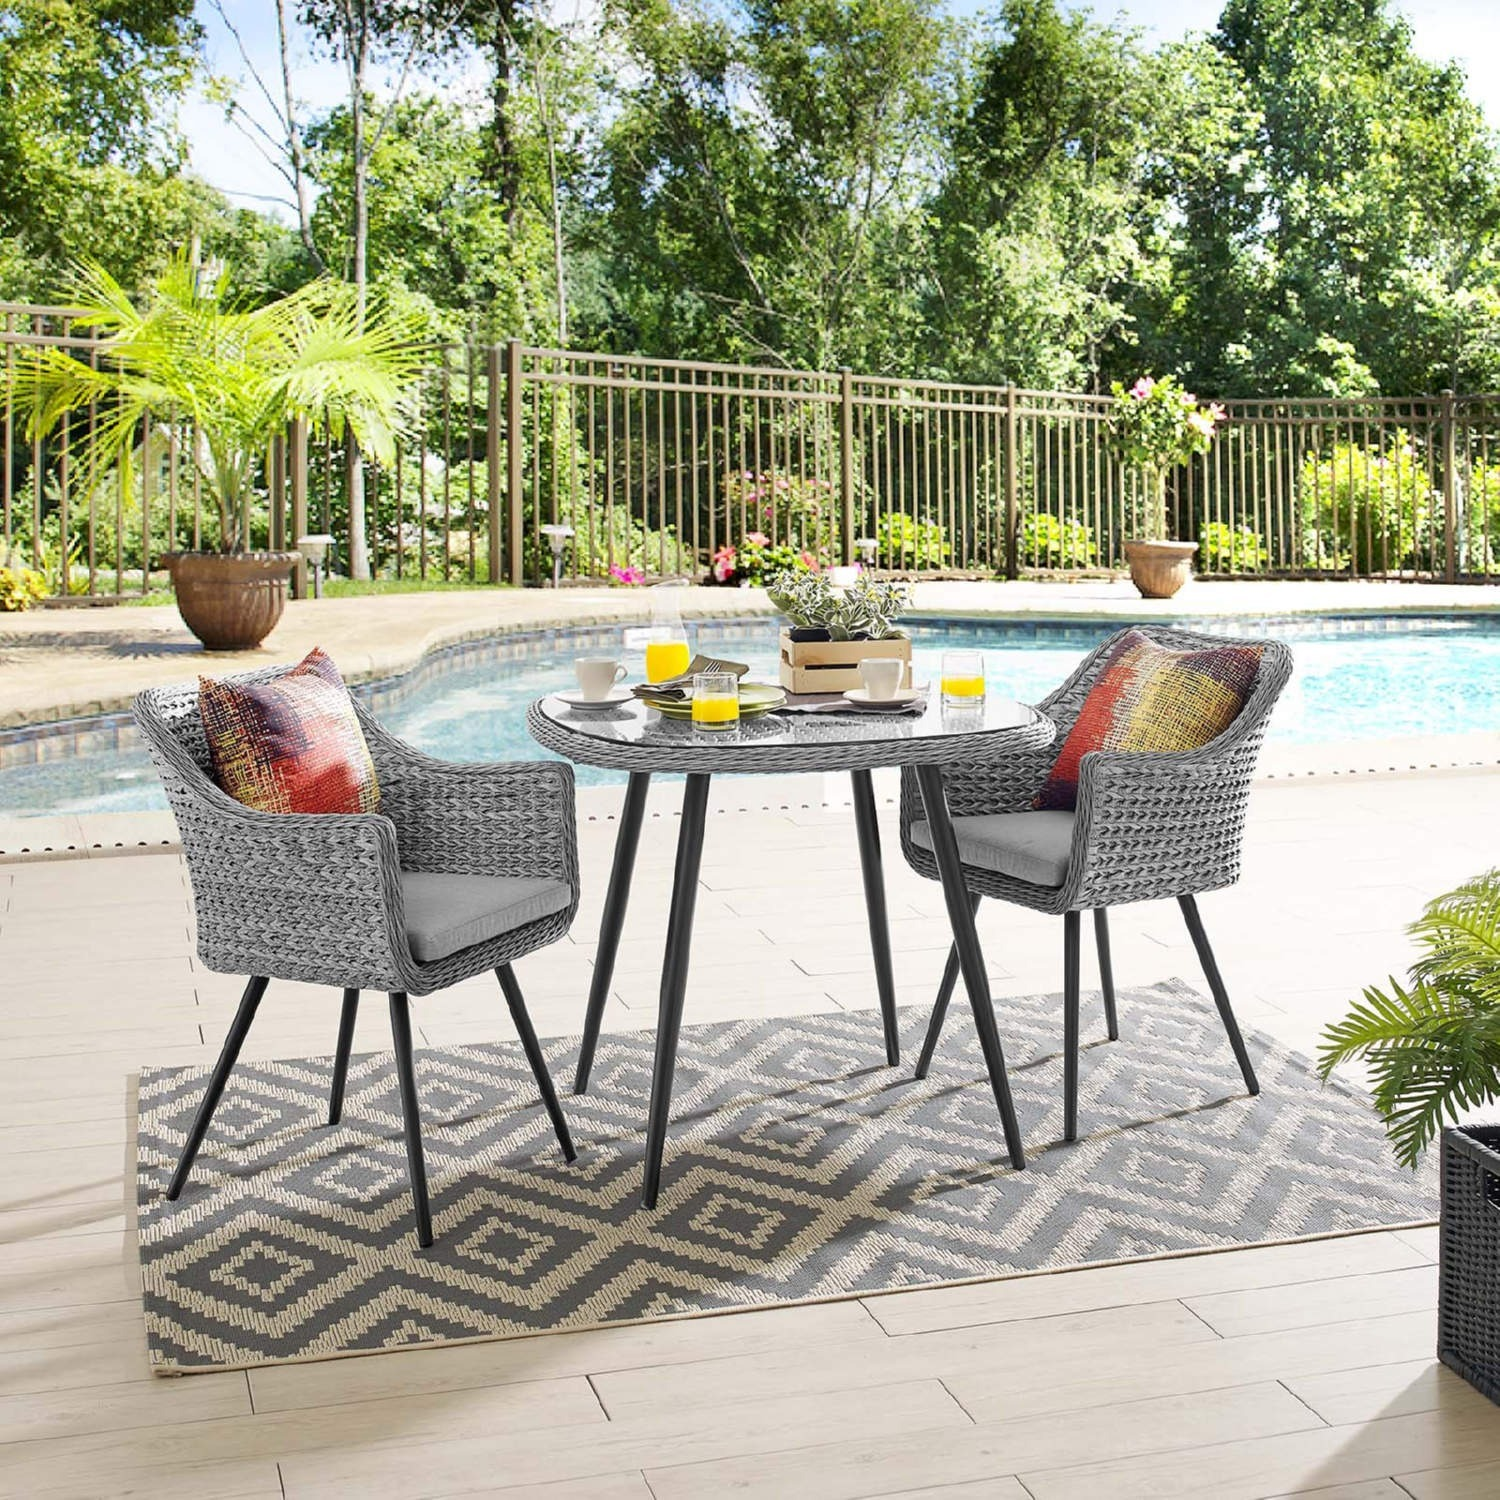 Modern 3-Piece Dining Set In Gray Rattan Weave - image-7